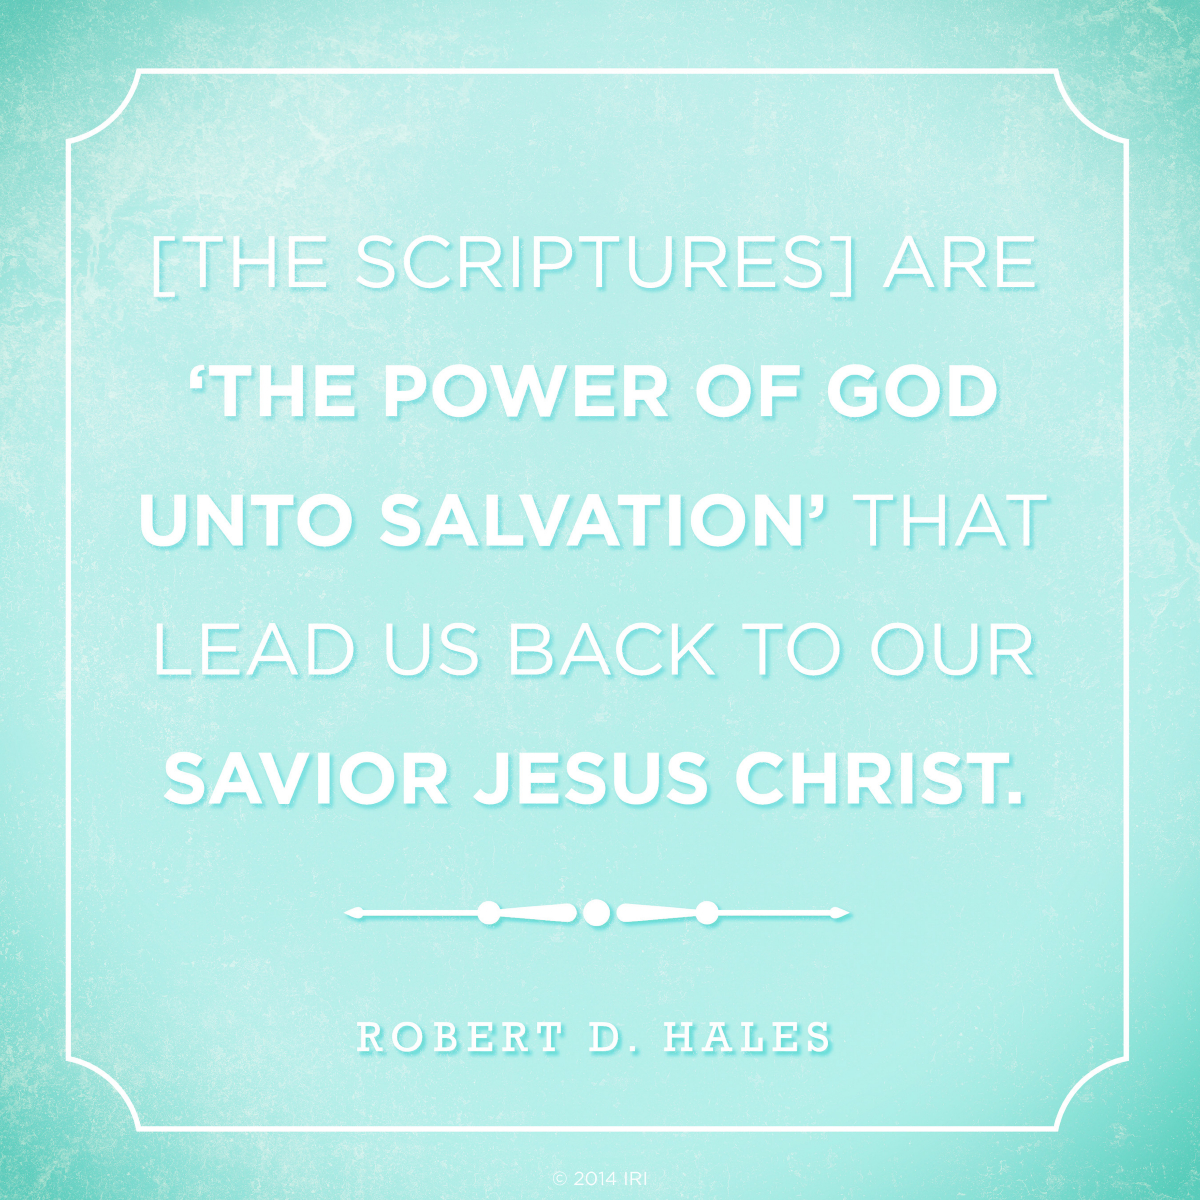 Quotes About The Power Of God: The Power Of God Unto Salvation